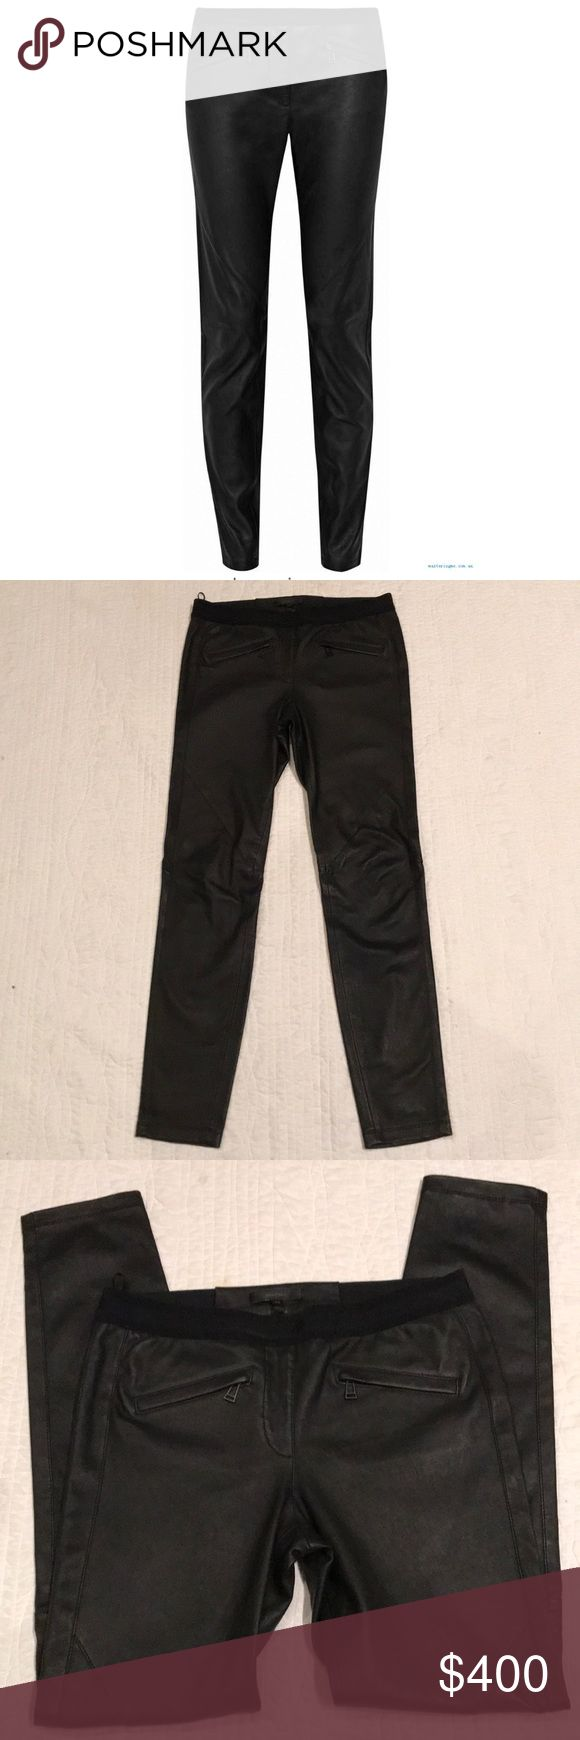 "Belstaff Barlow Leather skinny pants leggings Belstaff Barlow leather skinny pants, black (stock photo in red to show fit) size 42 which is equivalent to a size 8 (Italian sizing) only worn once, snug sleek fit, waist is about 14"" lying flat, hips are about 16.75"" lying flat, 29.5"" inseam and 9"" rise Belstaff Pants Leggings"